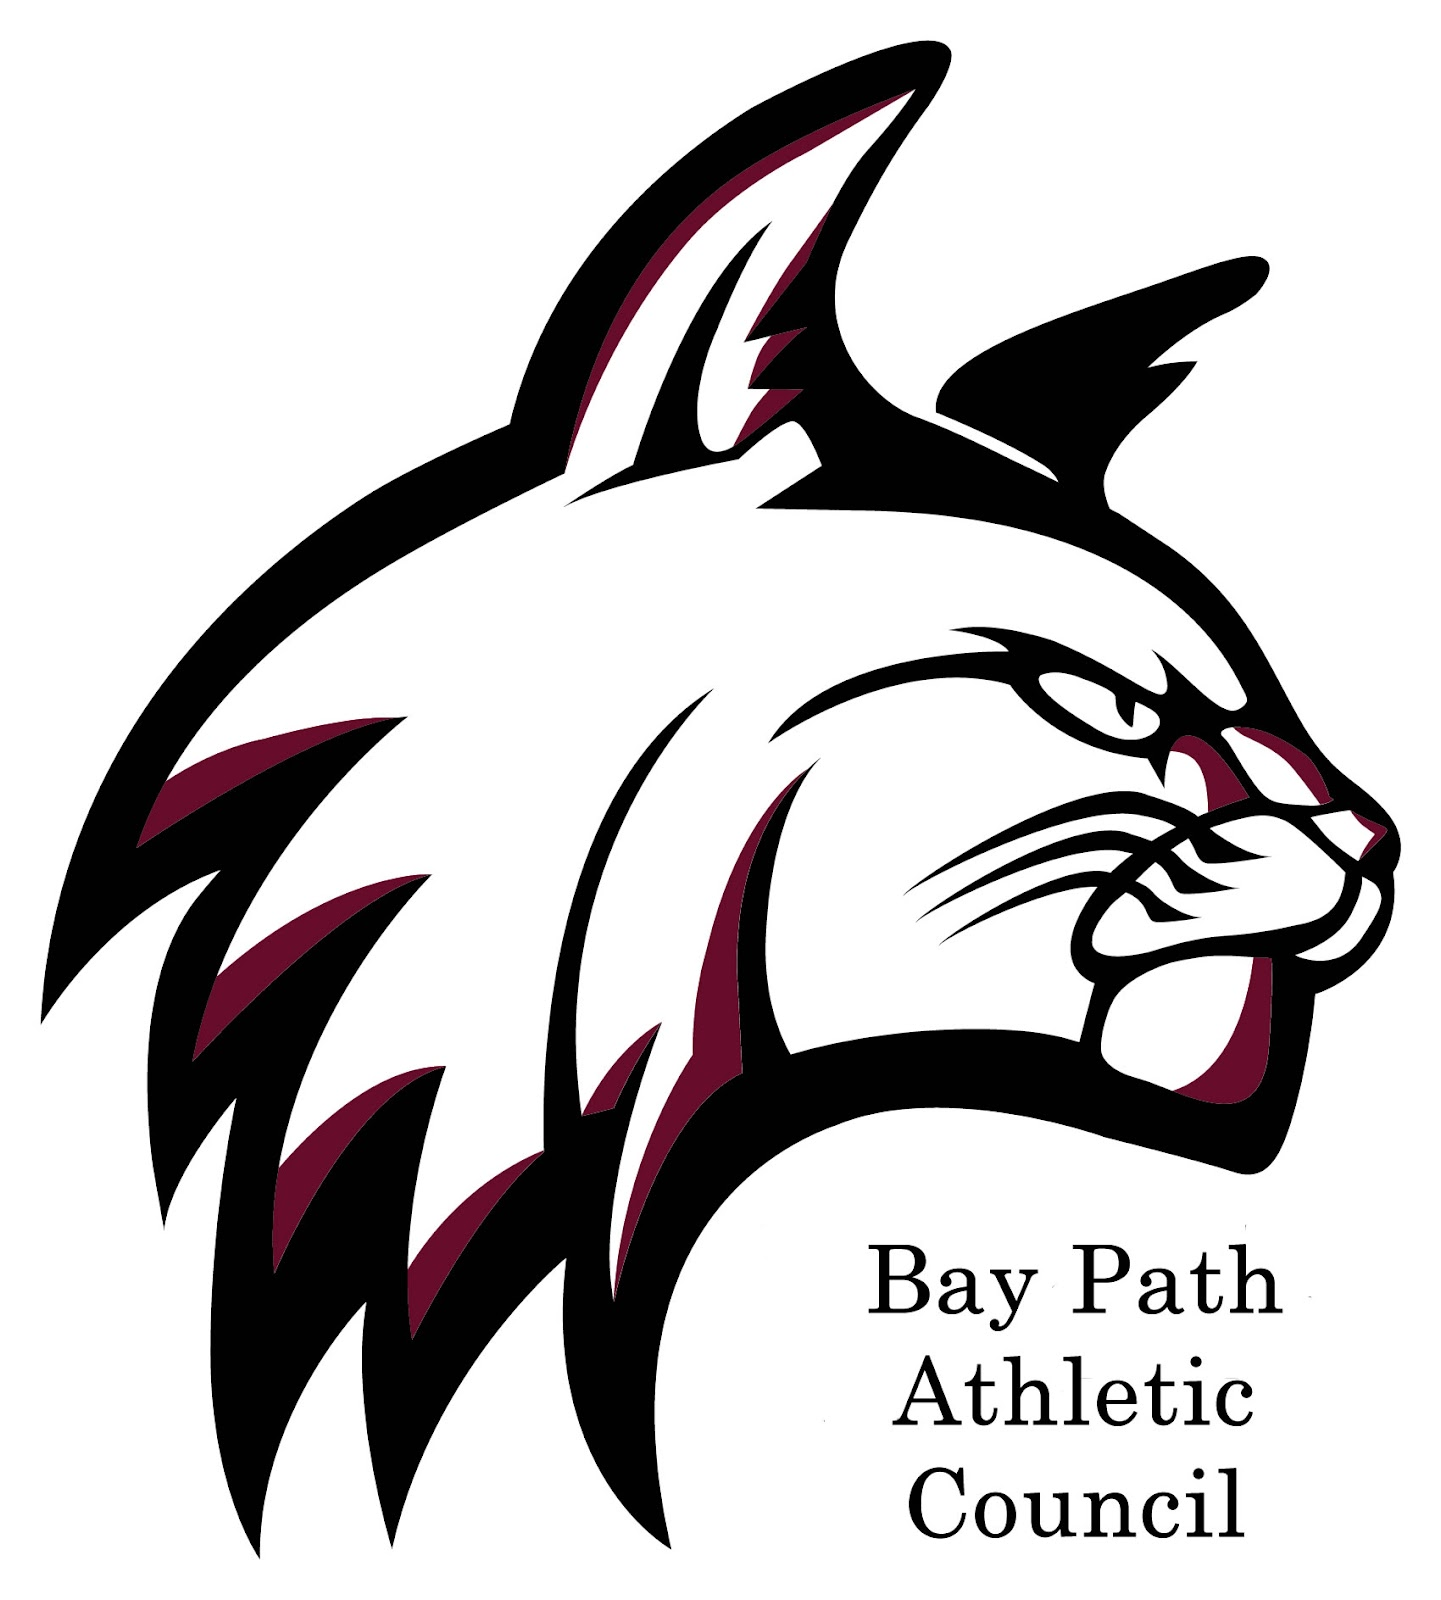 BPU Head Logo (with Bay Path Athletic Council).jpg